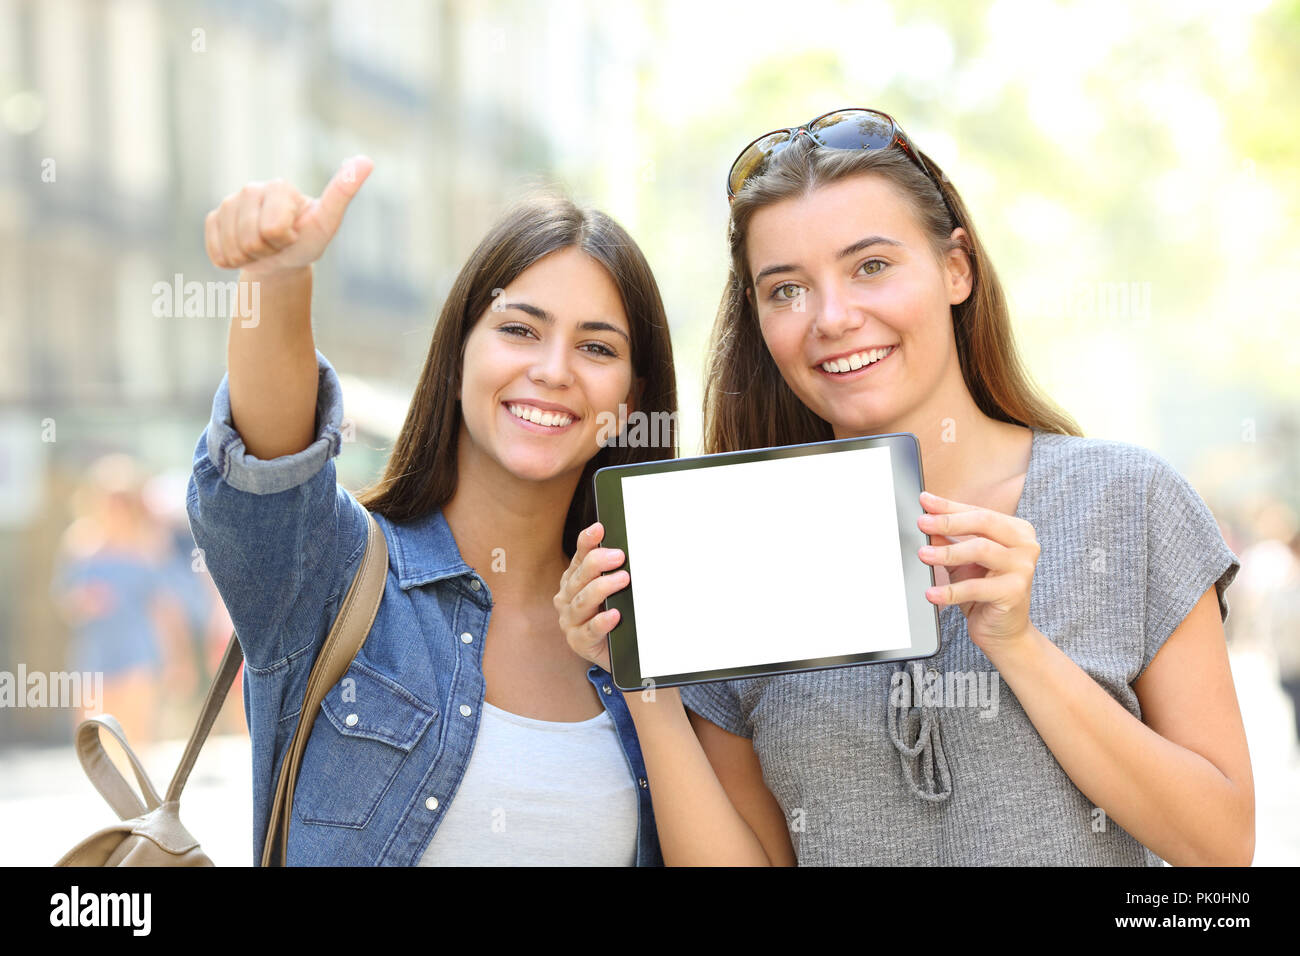 Front view portrait of a positive friends showing a blank tablet screen in a street - Stock Image